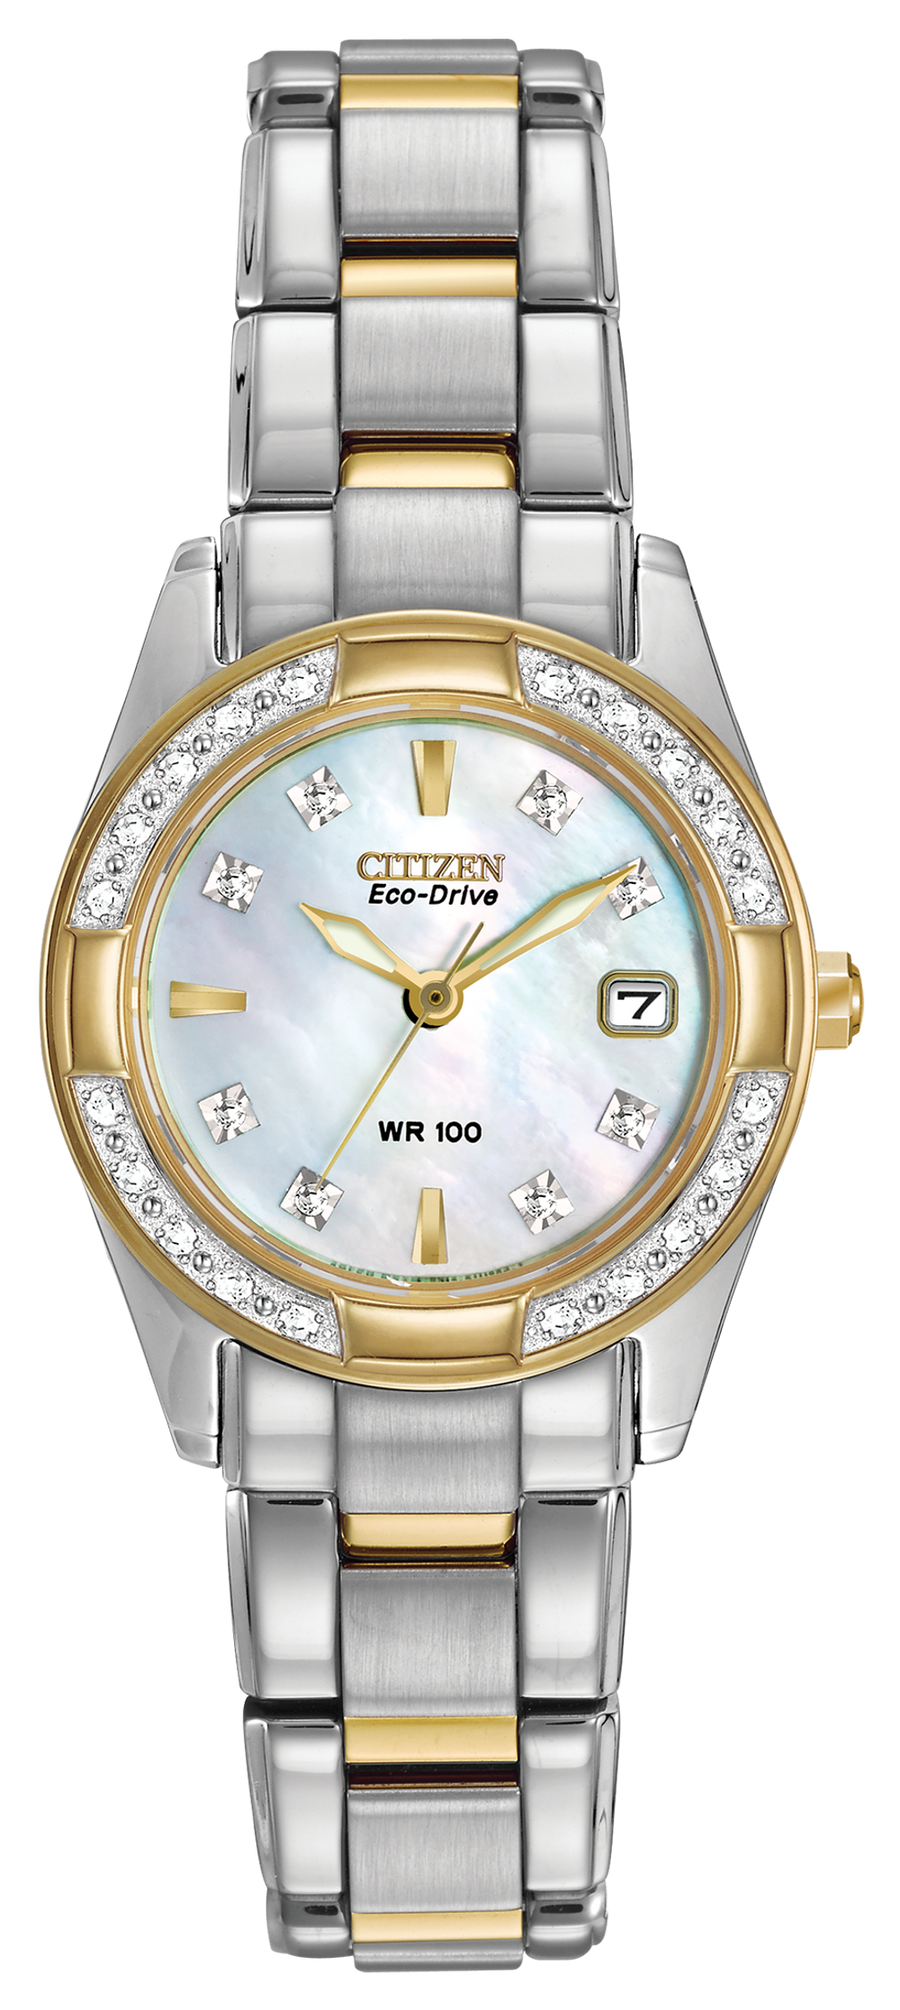 Regent / Citizen